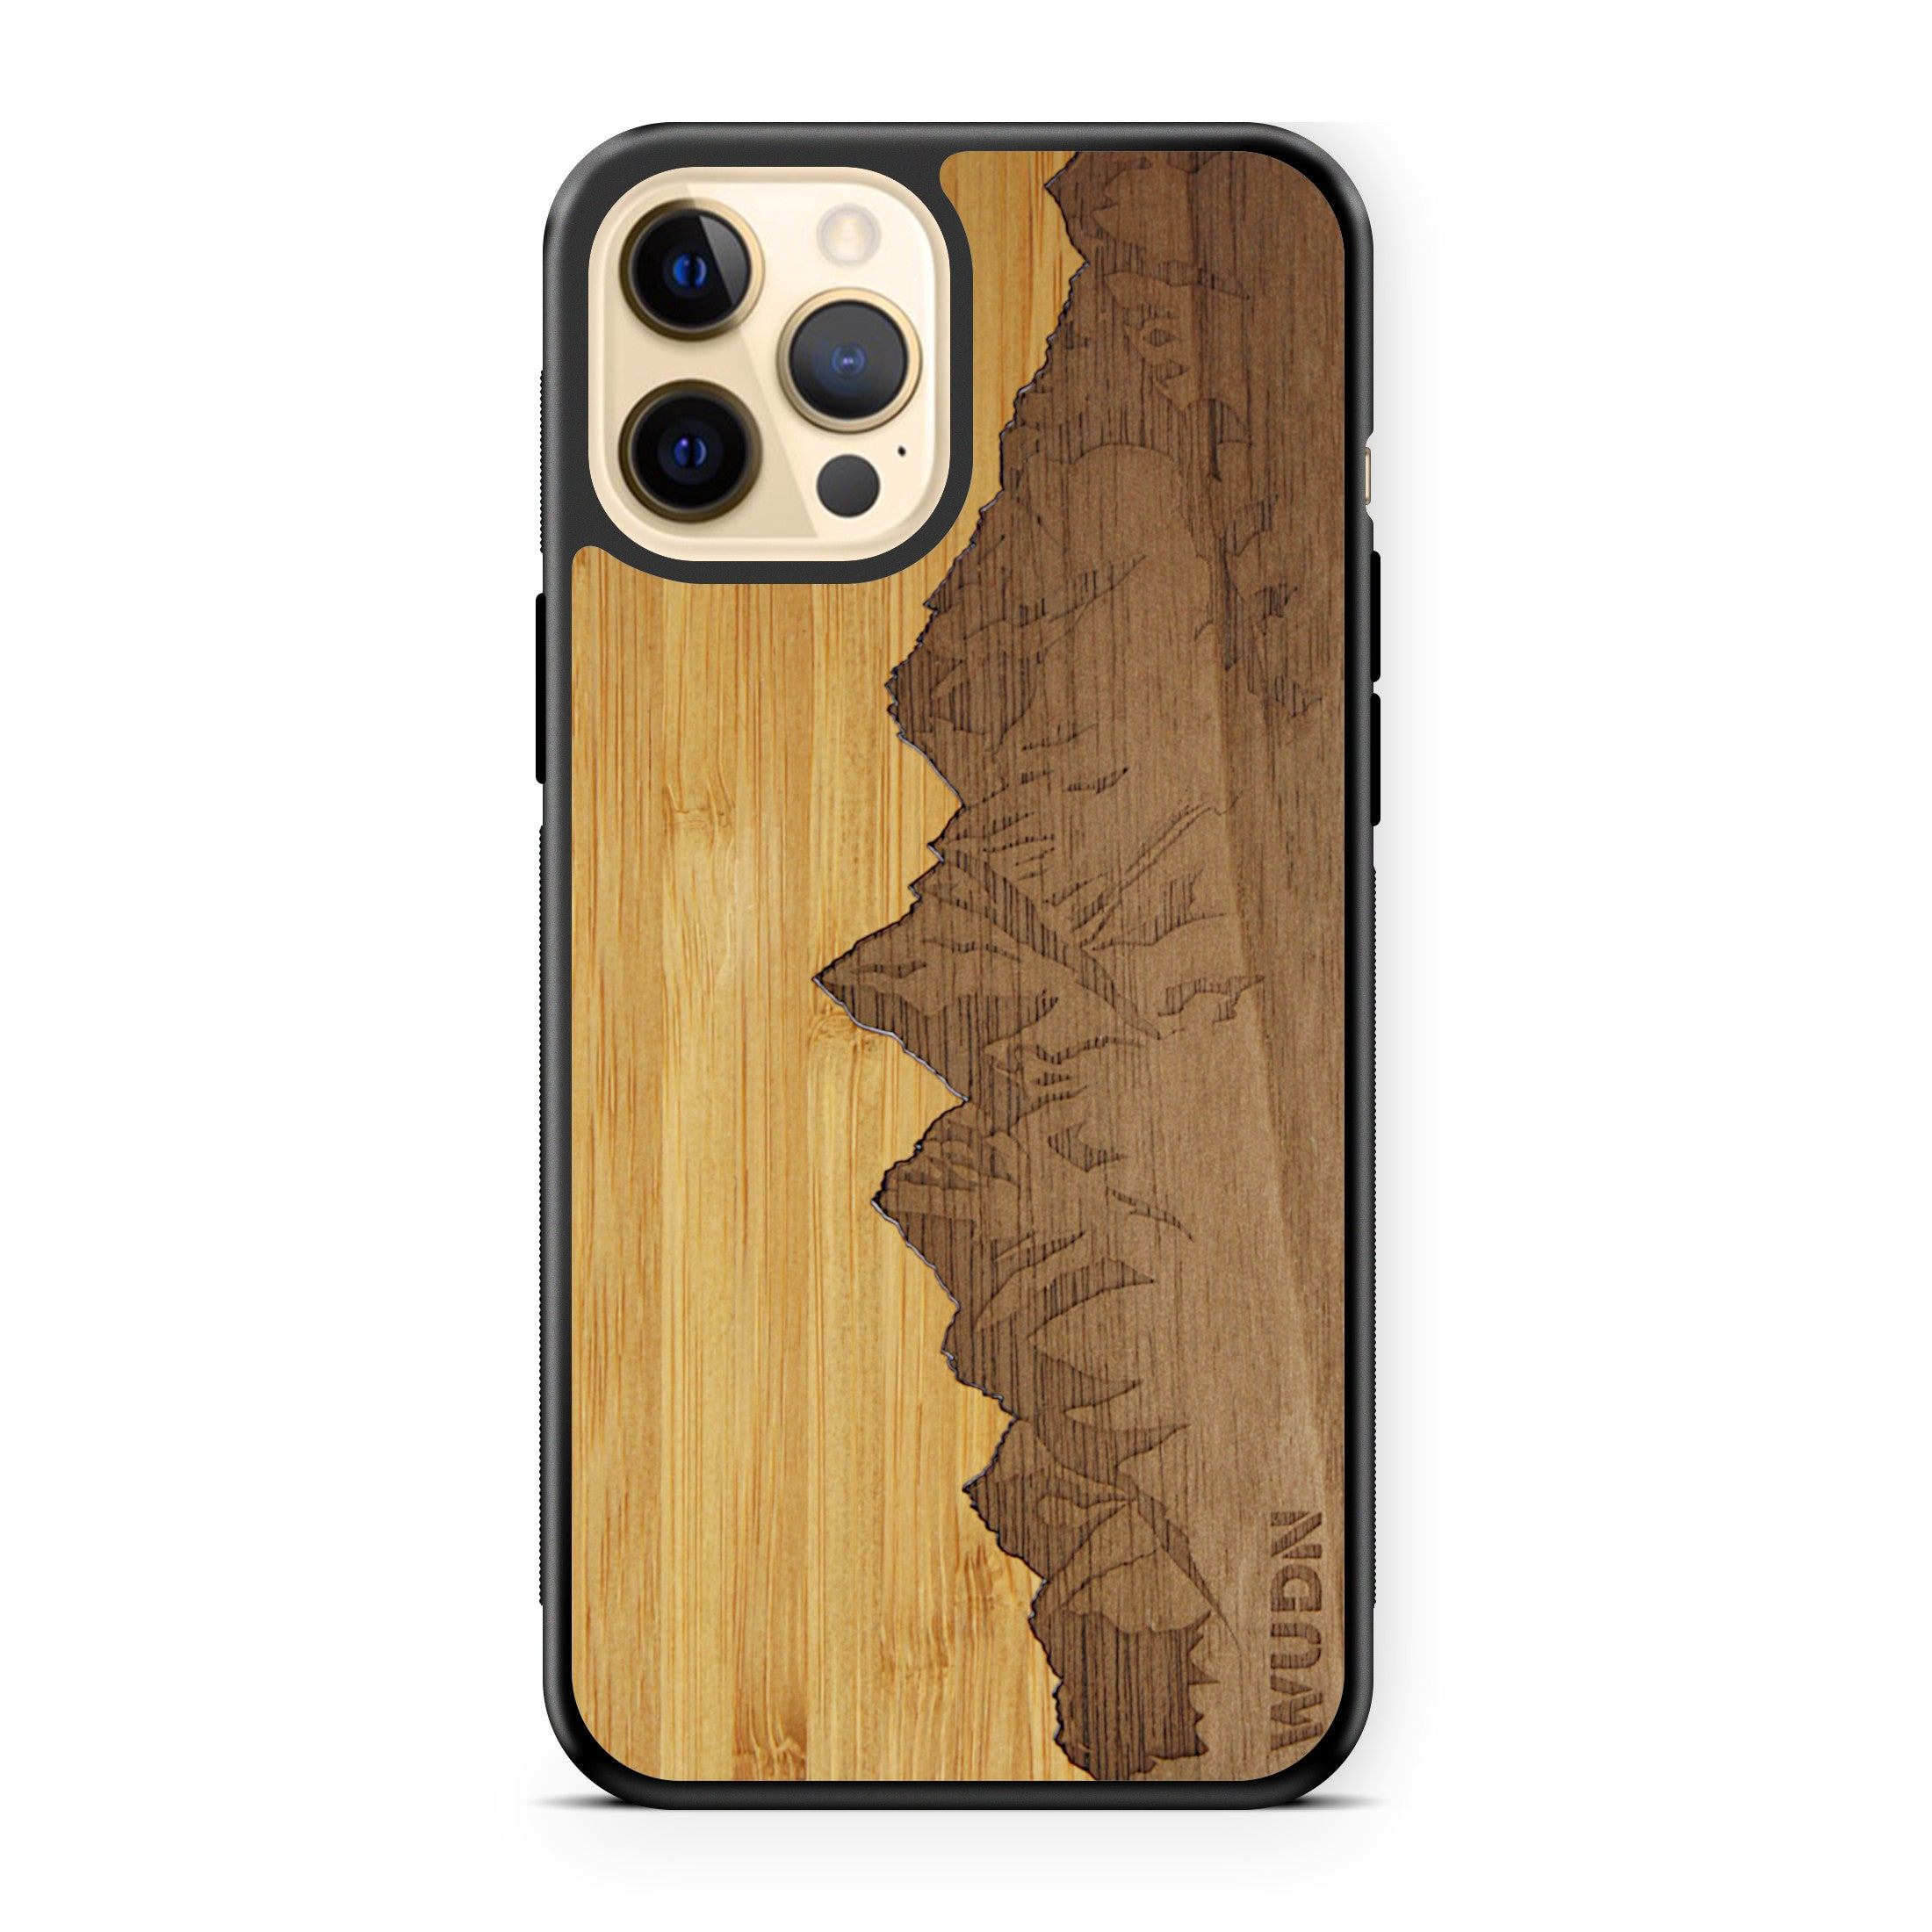 "Slim Wooden Phone Case | Sawtooth Mountains Traveler, Cases by WUDN for iPhone 12 Pro Max (6.7"")"